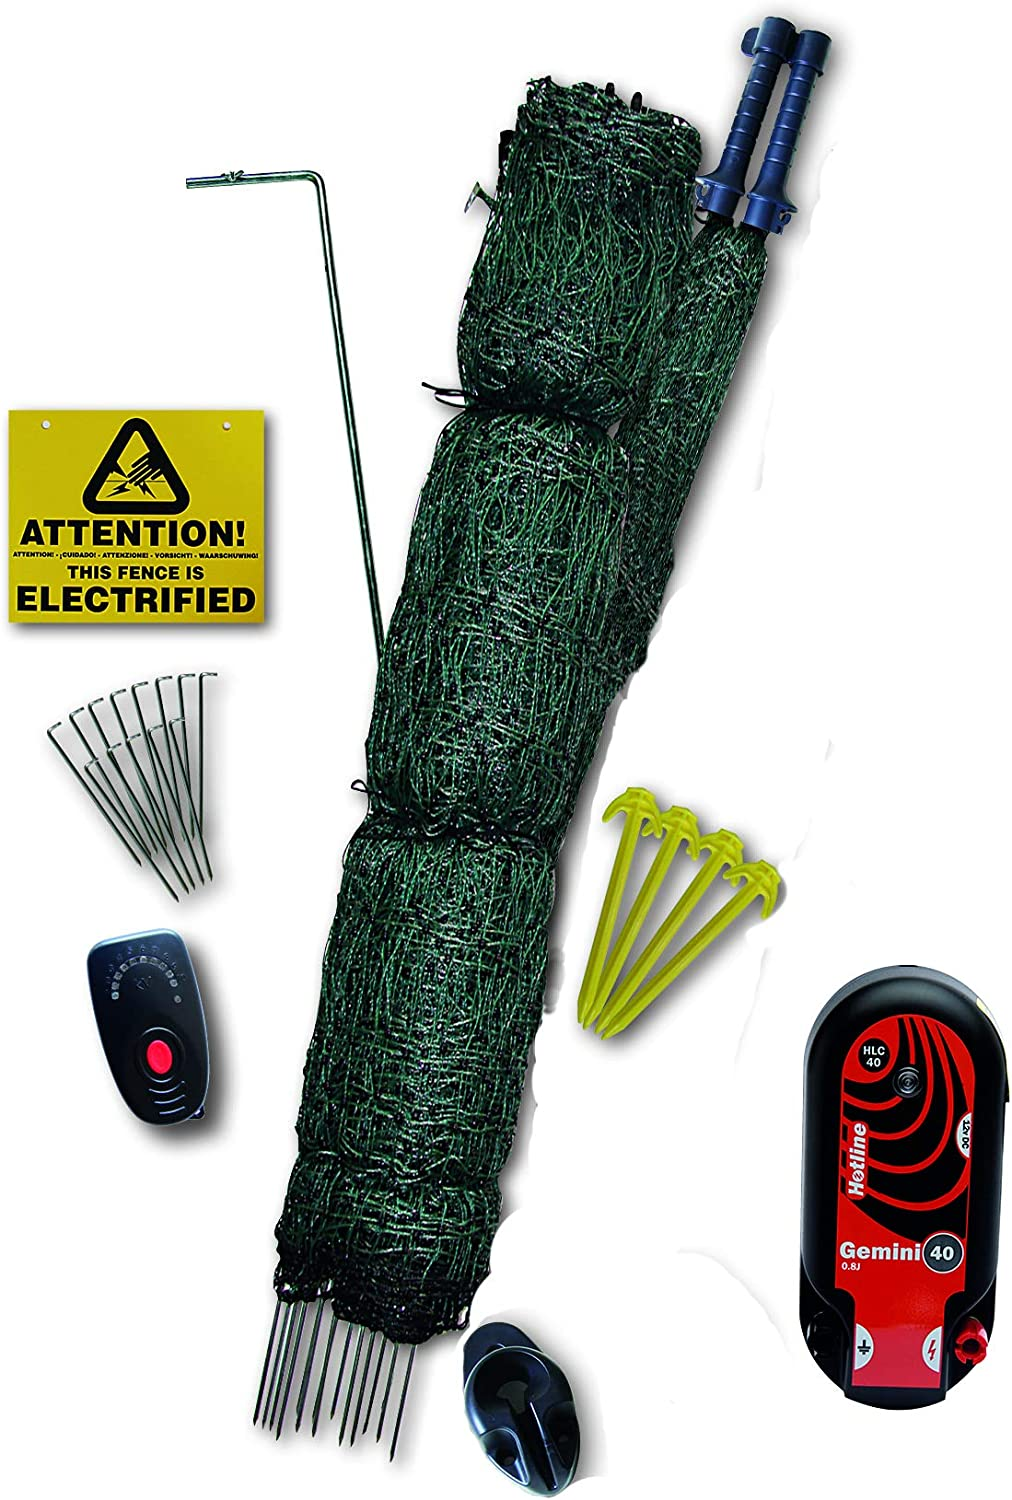 Hotline 25 METER x 1.22 METER HIGH PREMIUM FOX BUSTING POULTRY NETTING KIT WITH CLOSE MESH (Battery or Mains Powered)